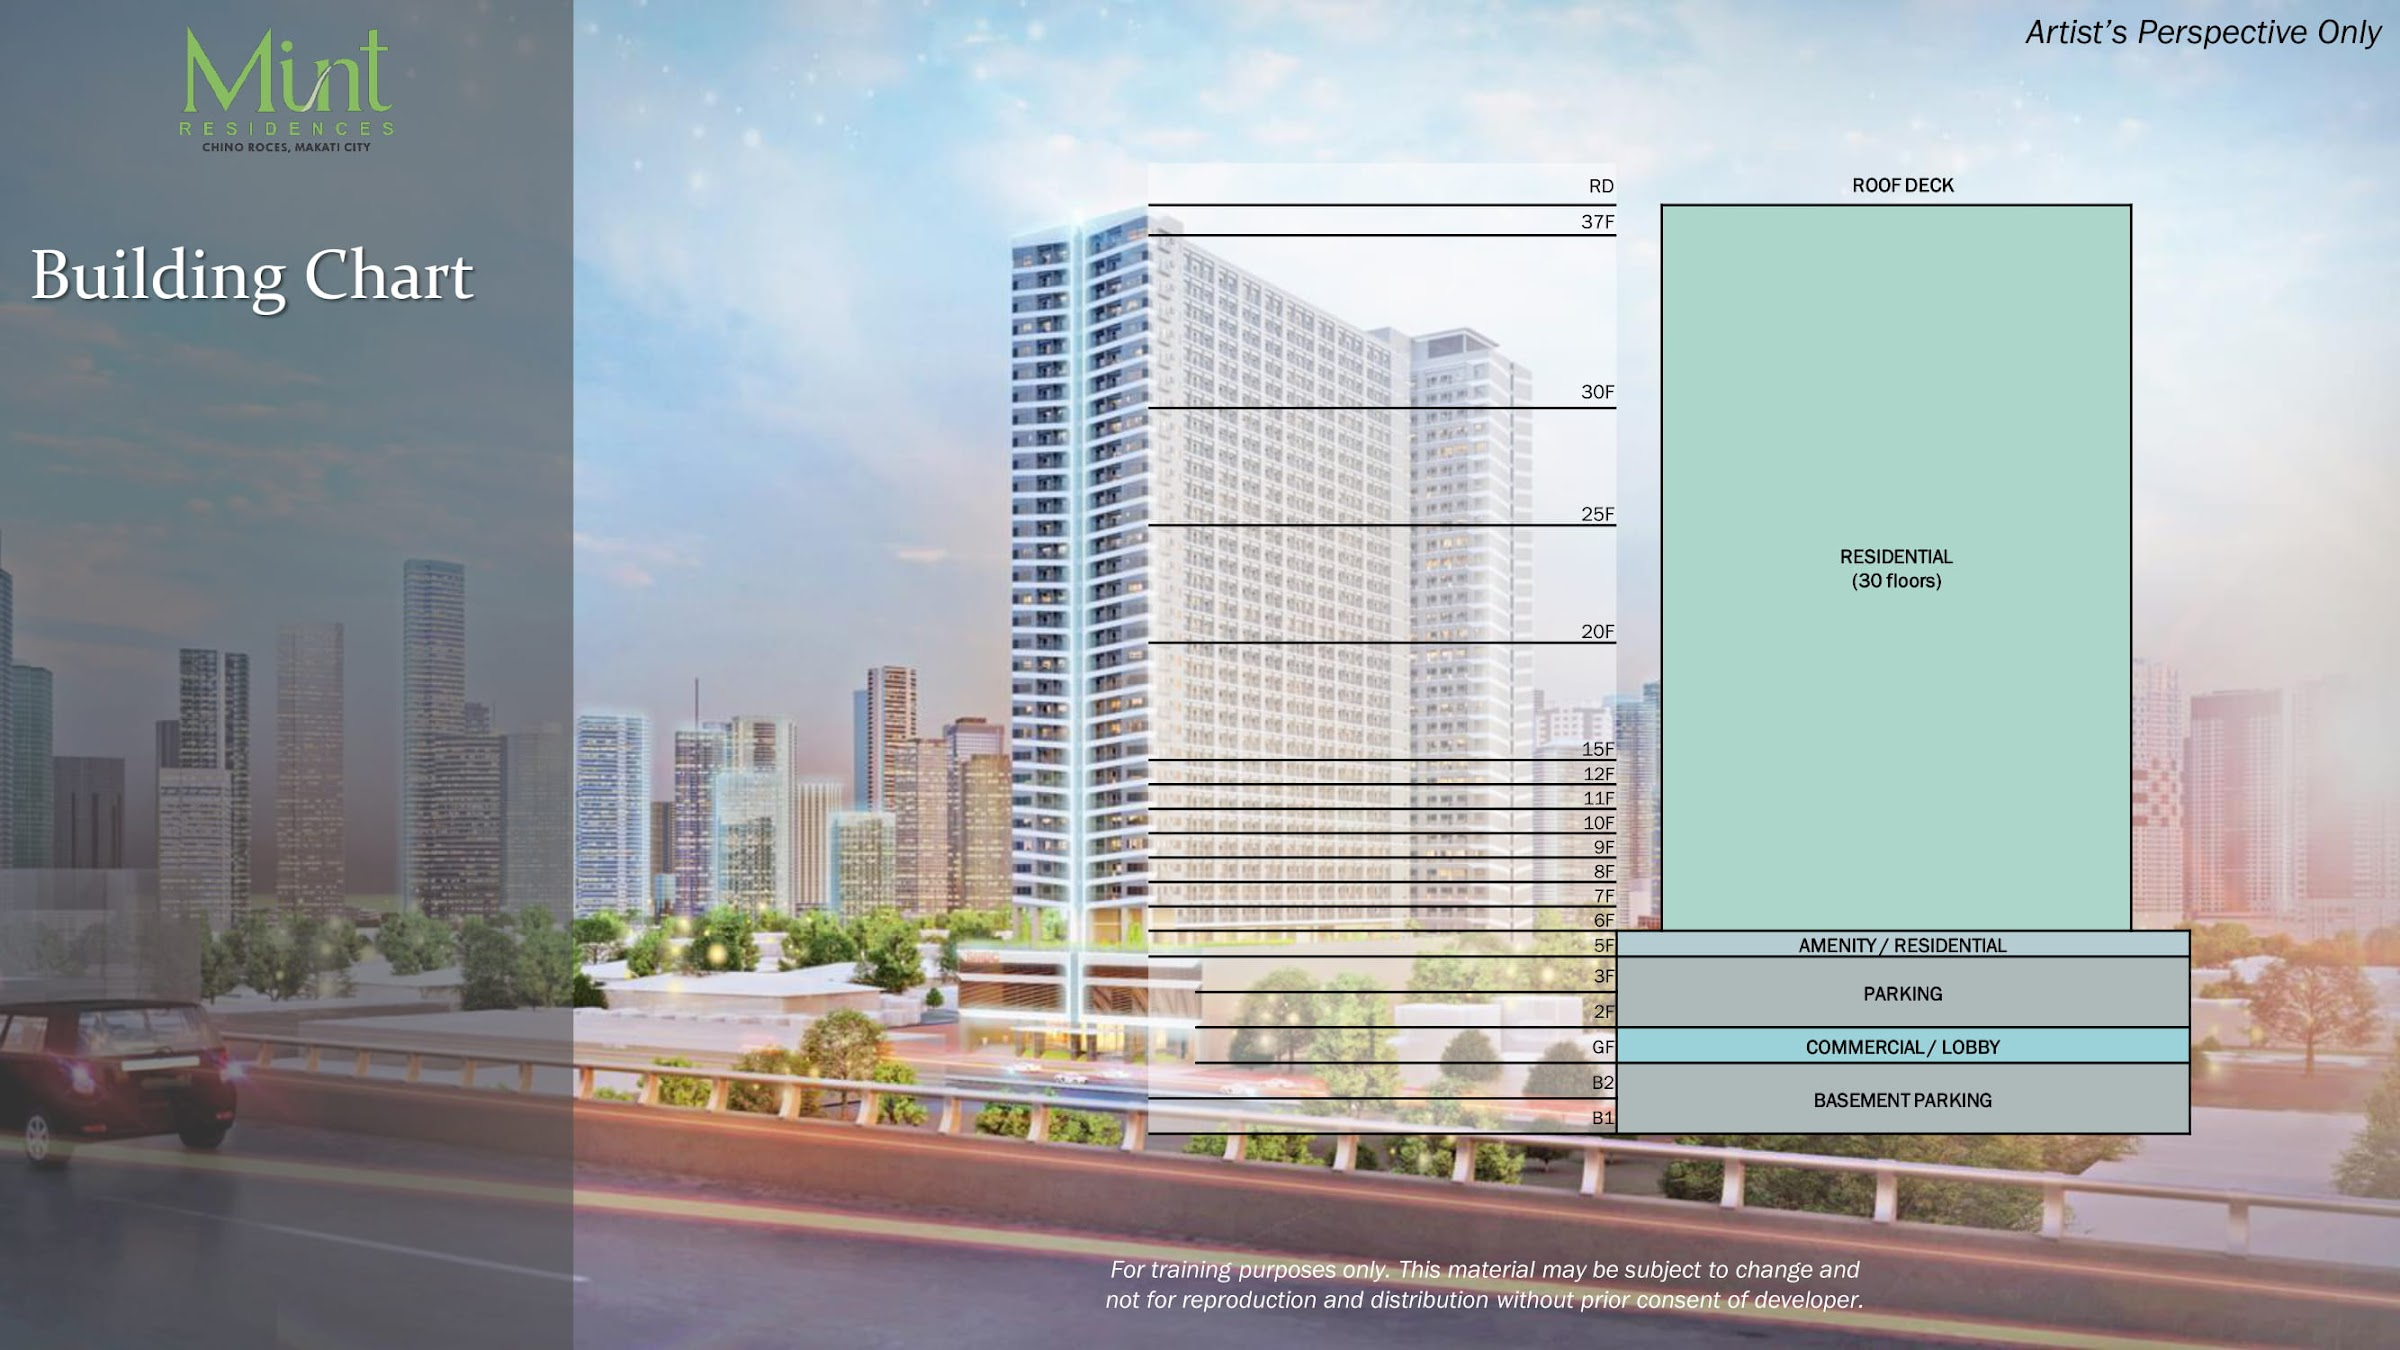 Mint Residences, Chino Roces Makati building chart